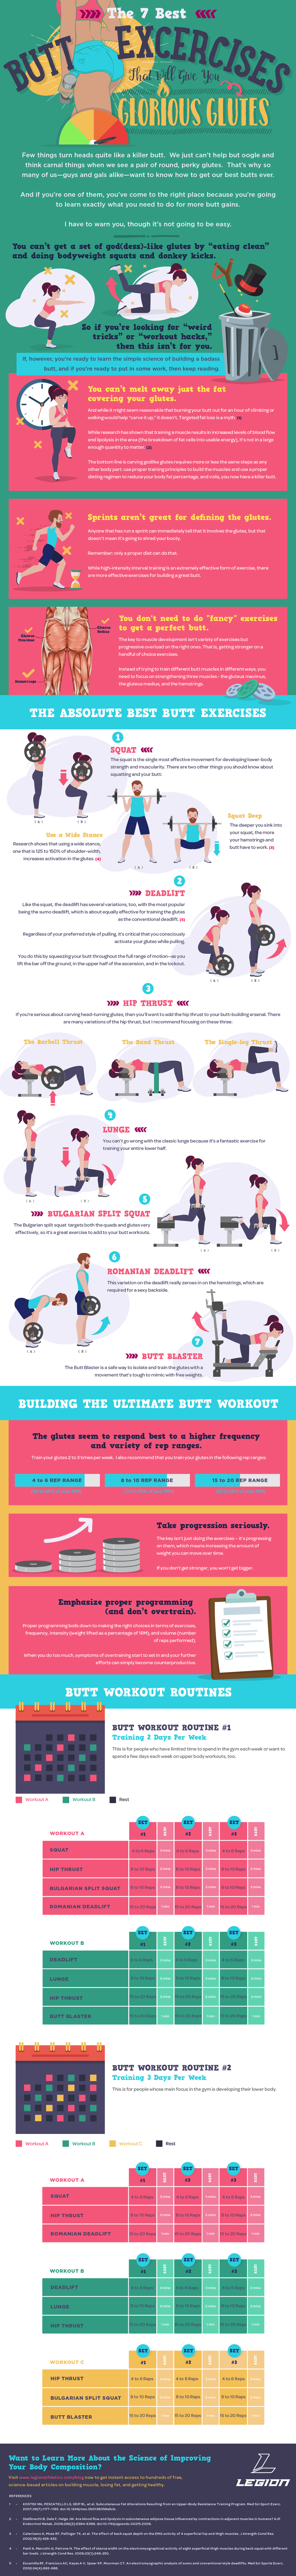 [INFOGRAPHIC] The 7 Best Butt Exercises That Will Give You Glorious Glutes